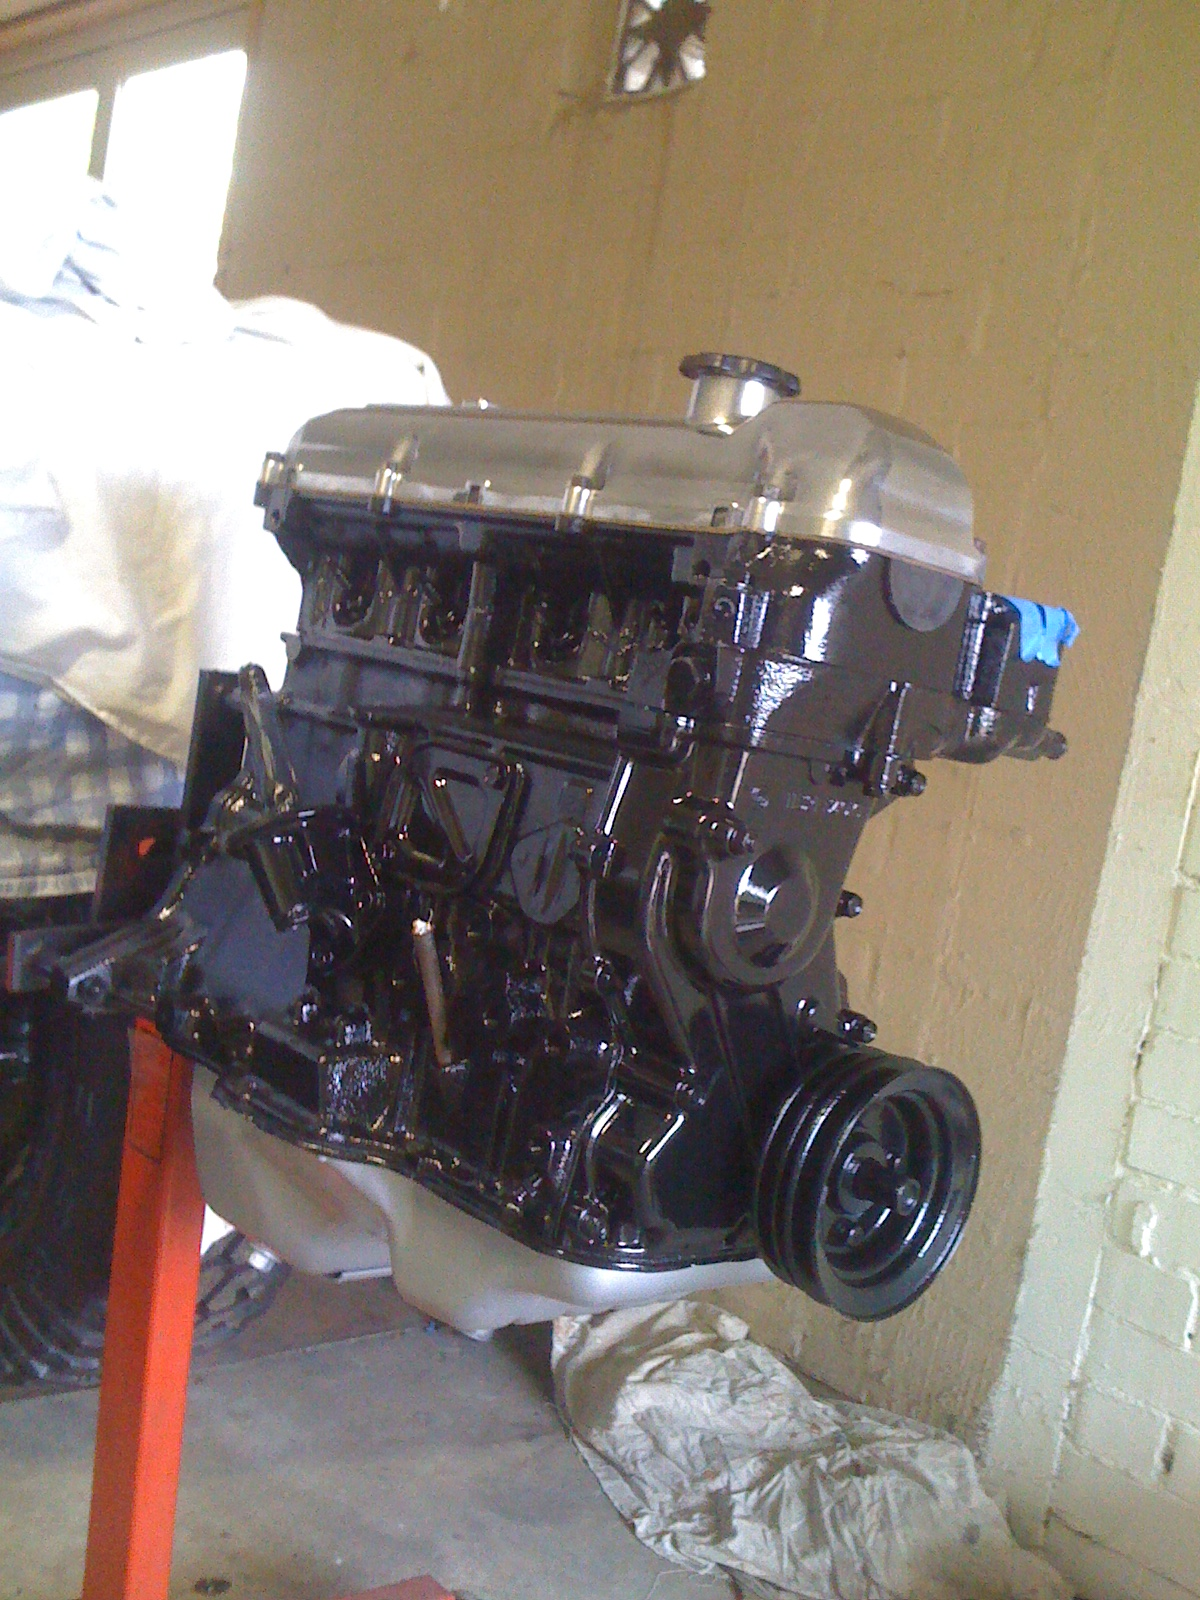 18r engine full rebuilt  stroked - for sale